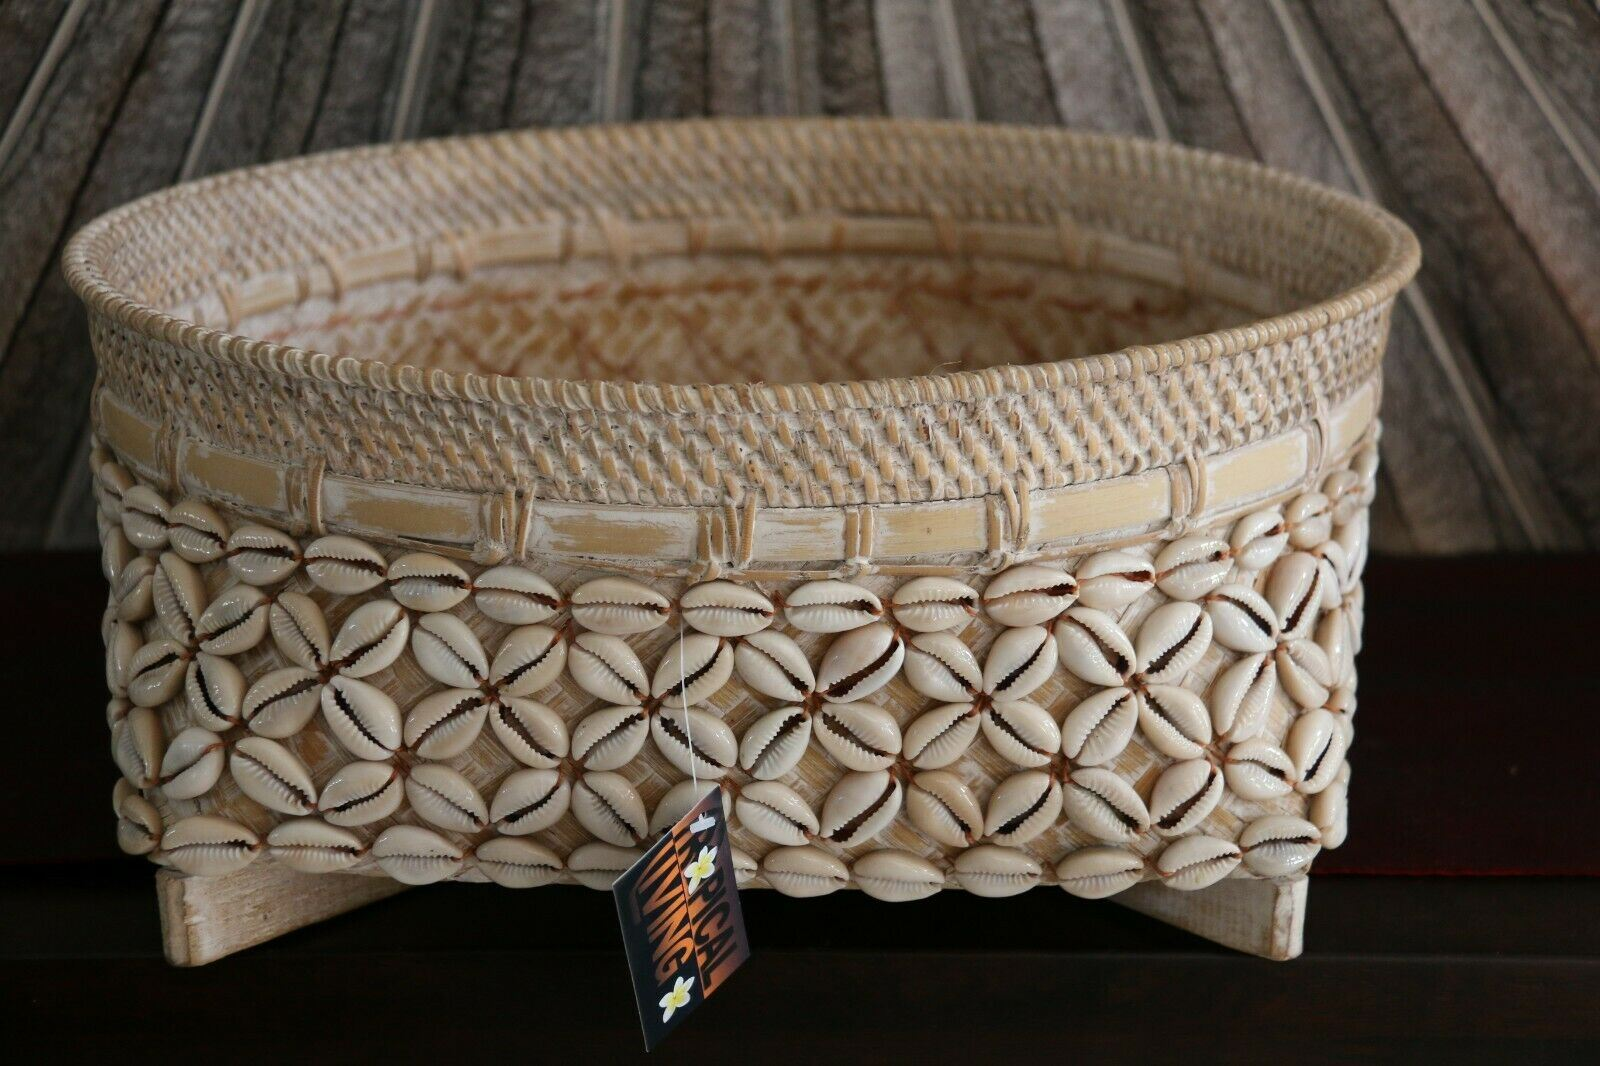 NEW Balinese Hand Crafted Woven Open Basket w/Rattan & Shell Trim - 3 Sizes Avai